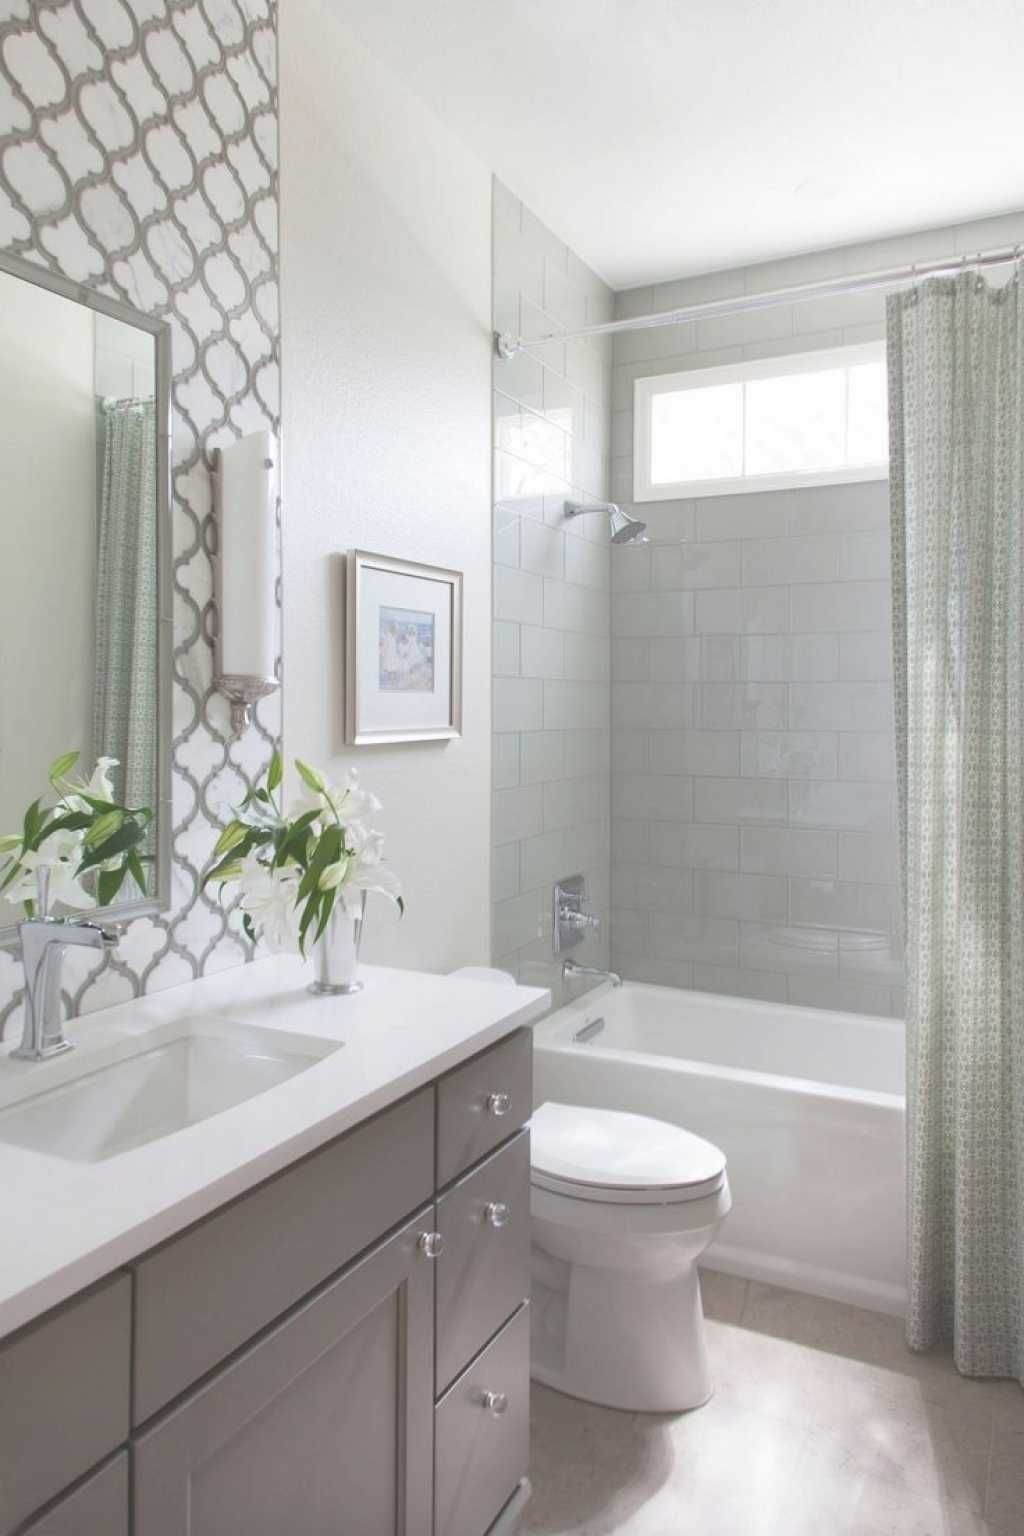 Elegant Bathroom Design Ideas For Small Bathrooms On A Budget Home Decor Bathroom Tub Shower Combo Bathroom Design Small Bathrooms Remodel